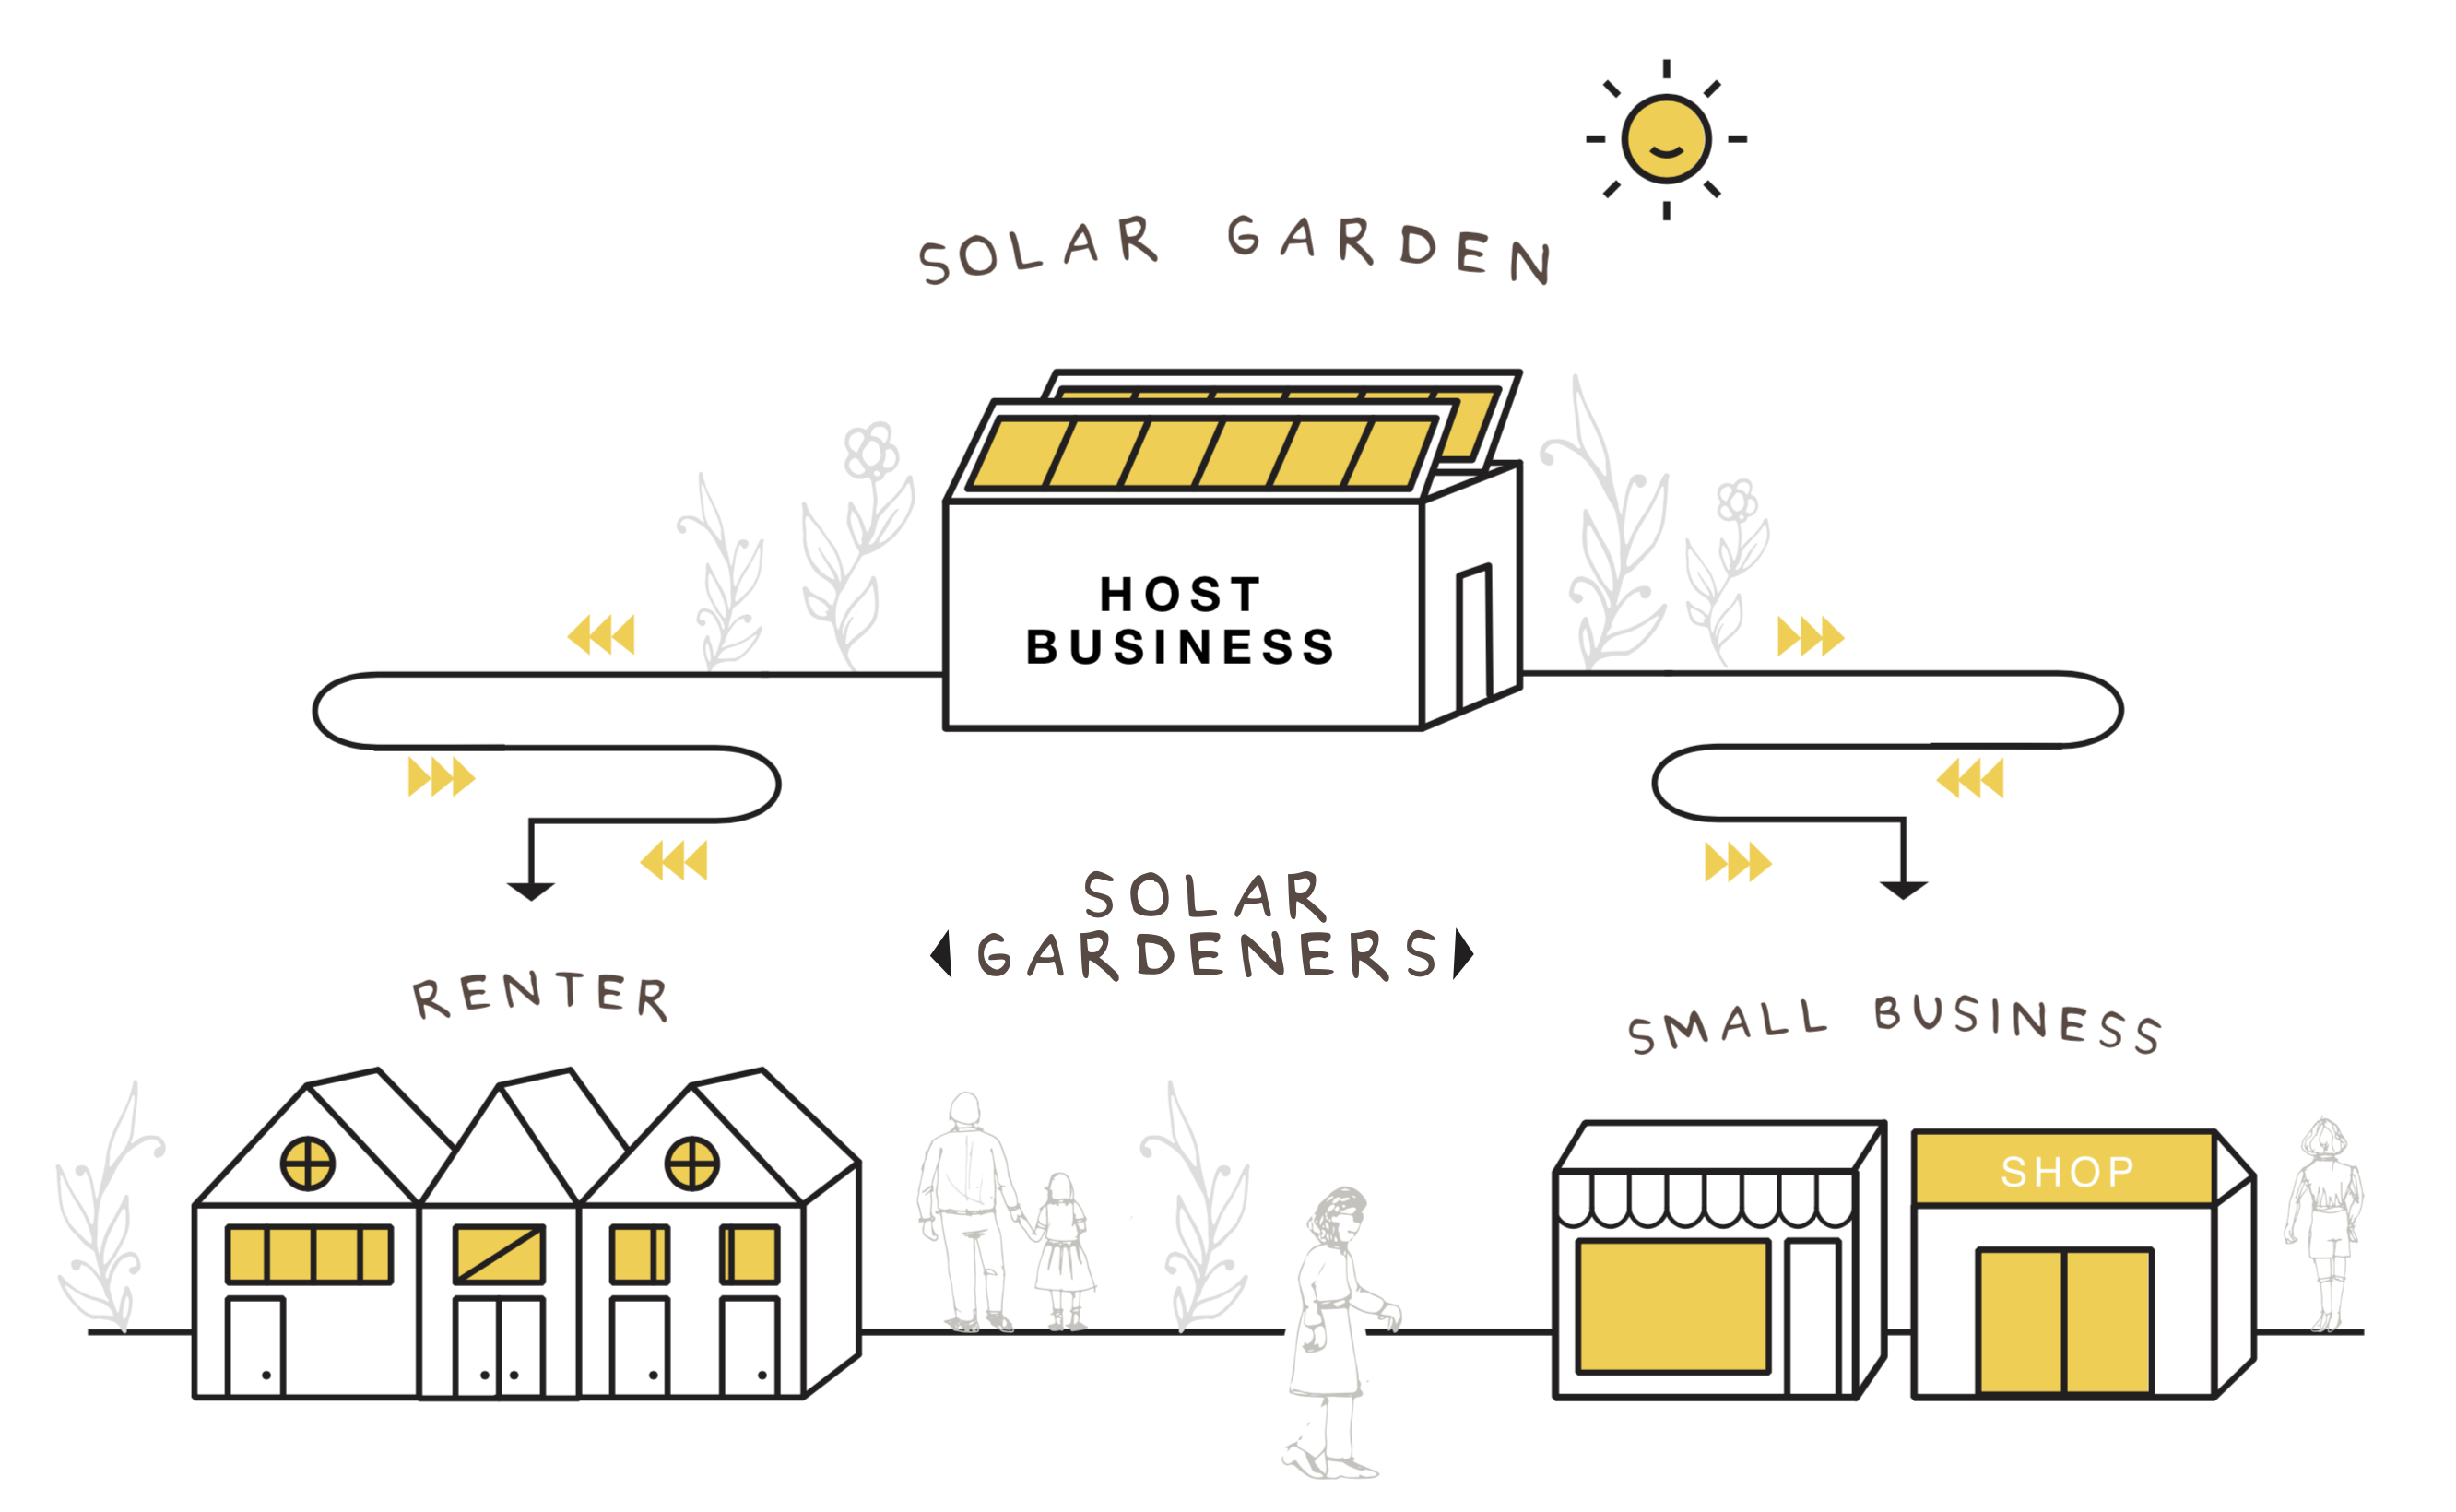 community-owned-solar-garden model